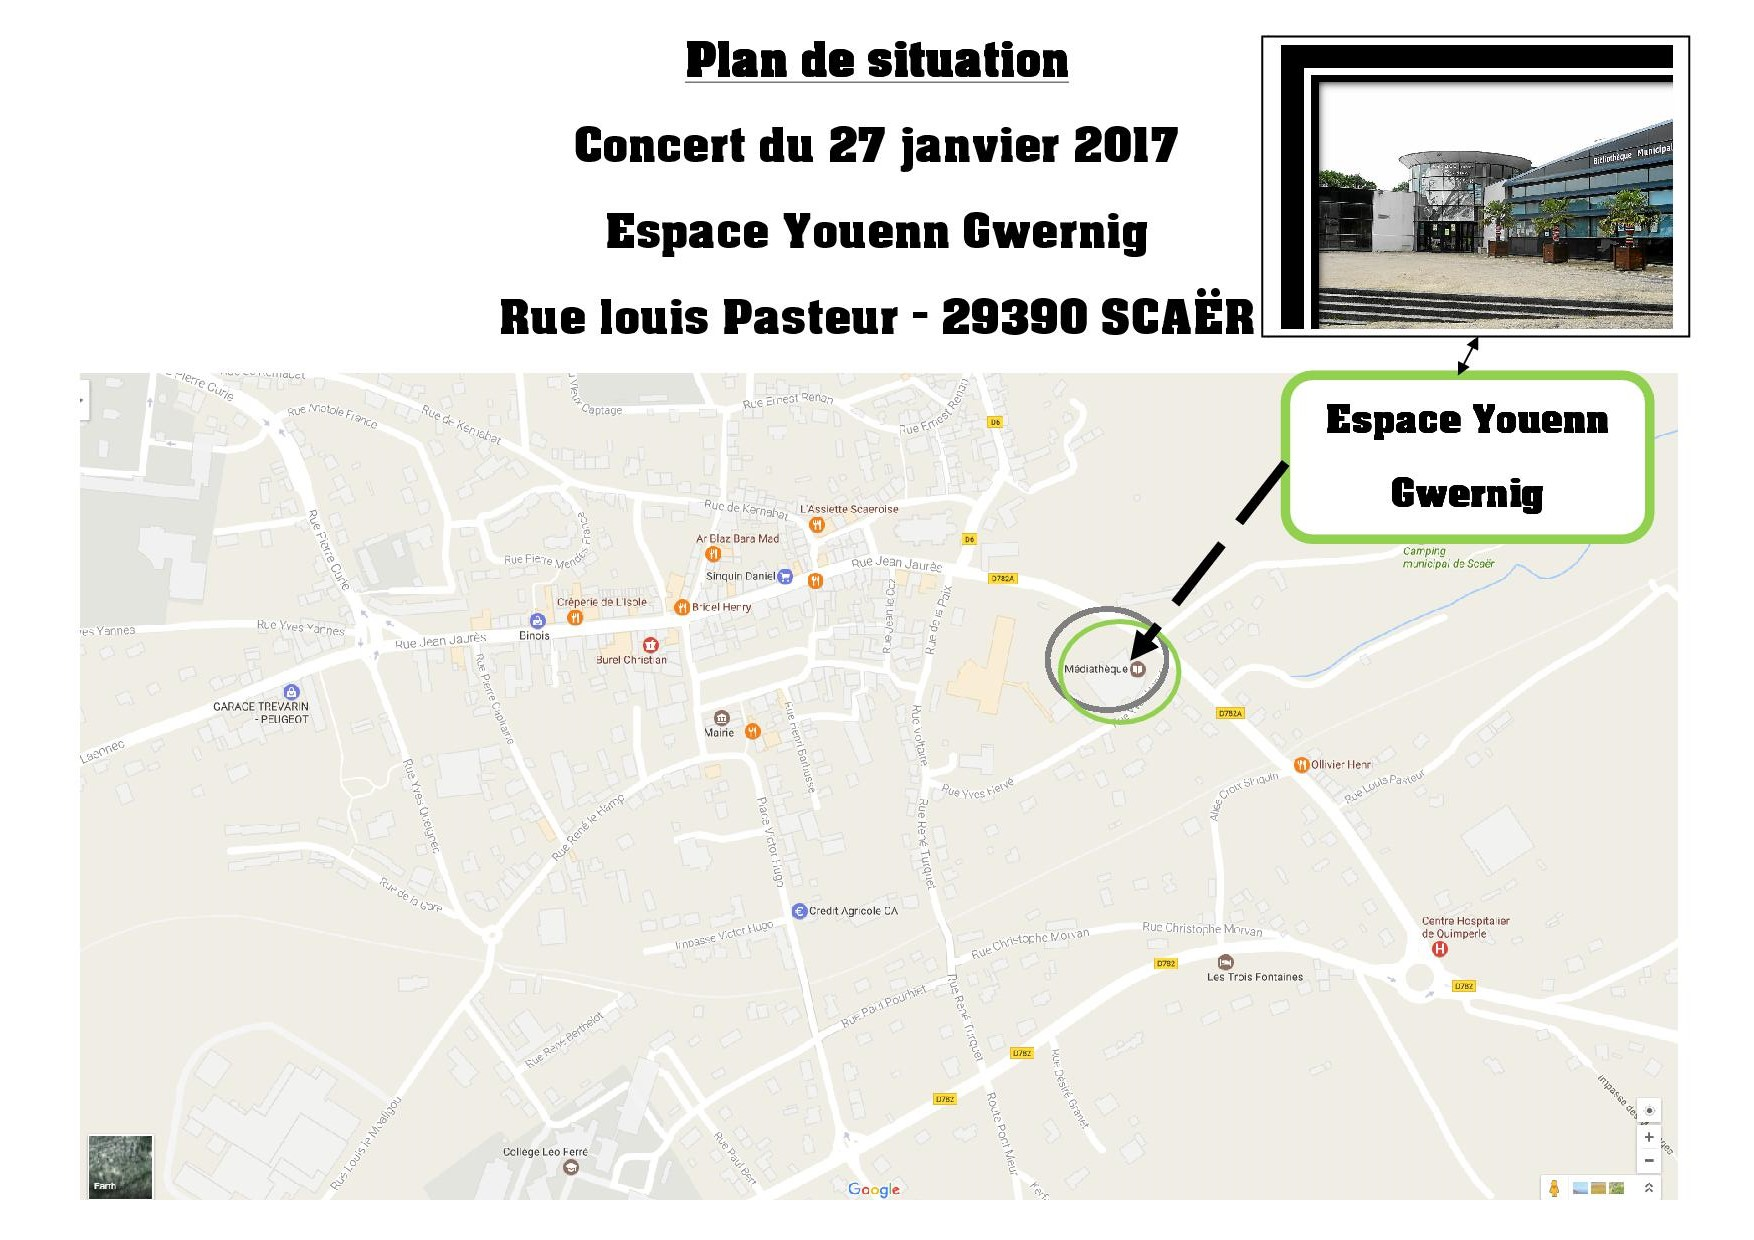 Plan de situation 3 concert scaer 270117.jpg